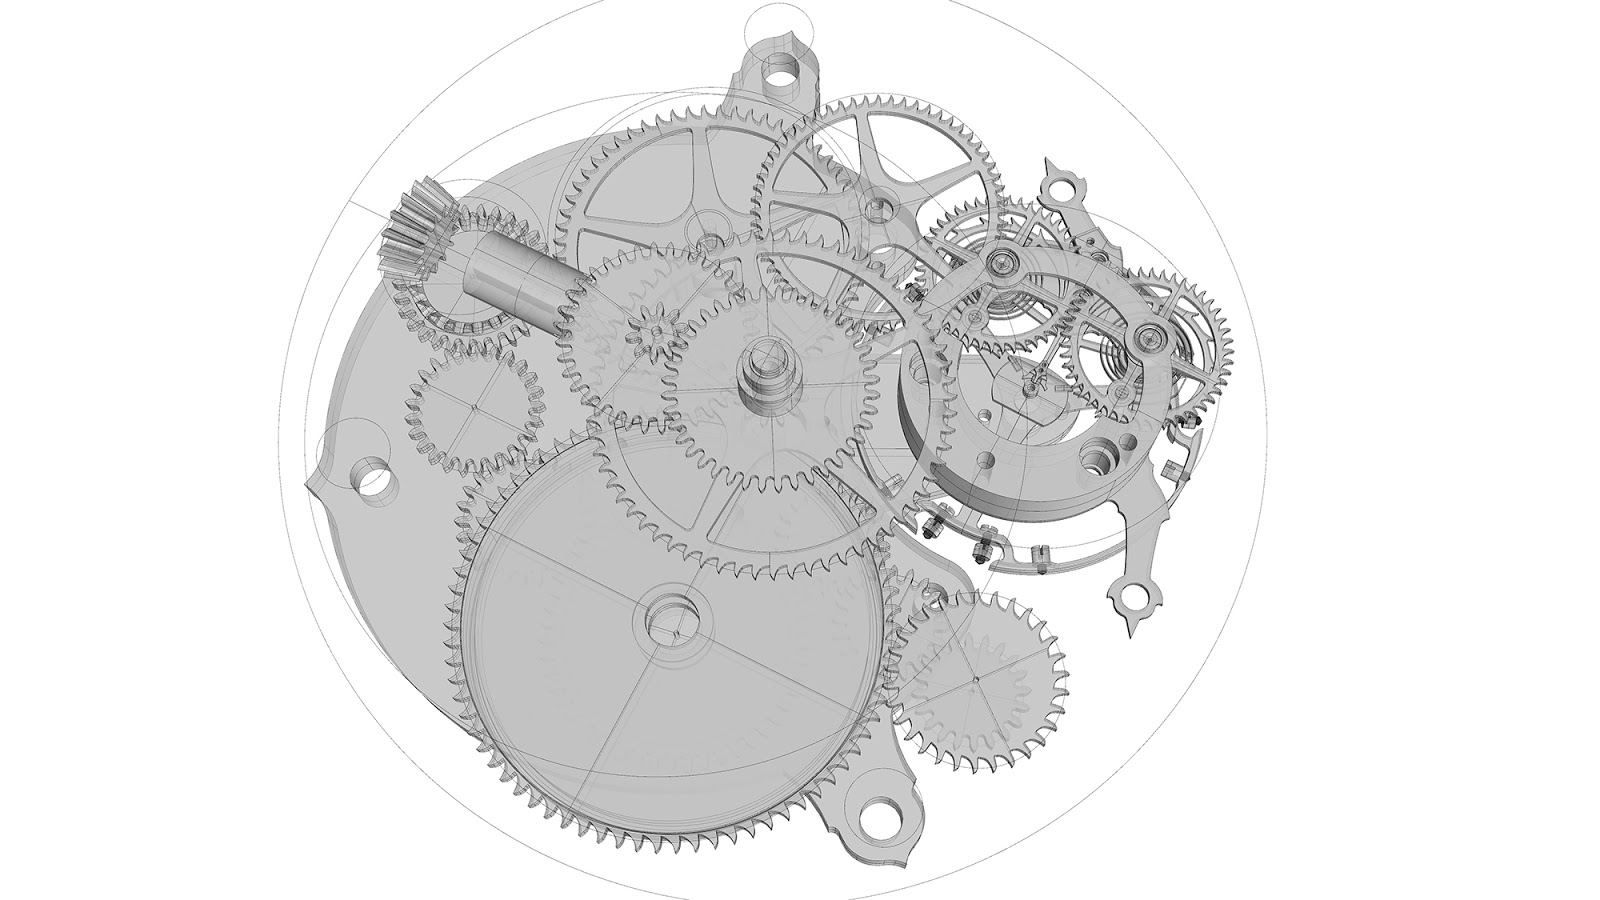 pocket watch movement diagram 1995 ford ranger alternator wiring the gallery for gt gears drawing